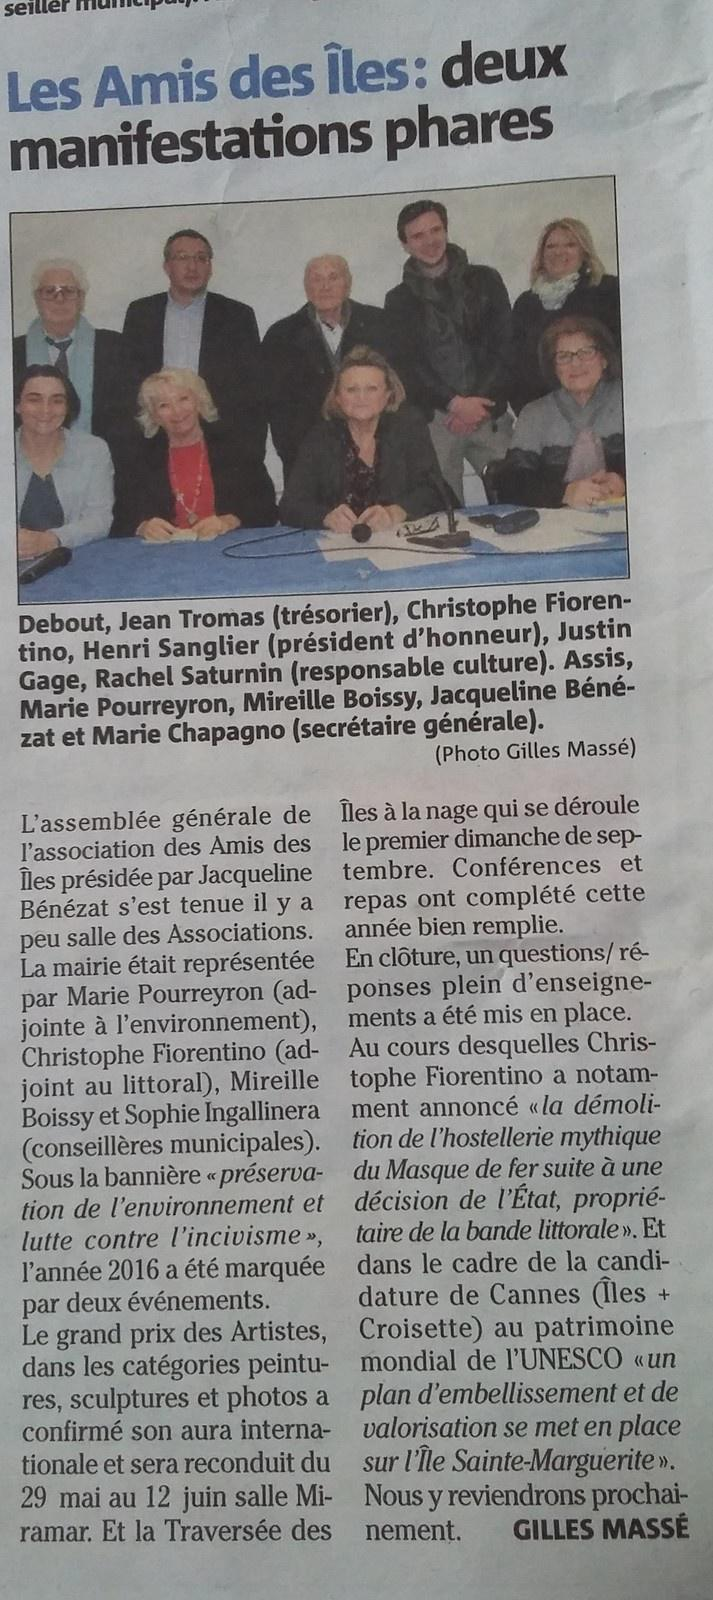 Nice Matin Feb 2017, on the podium with elected officials for Cannes' portfolio they are presenting to UNESCO